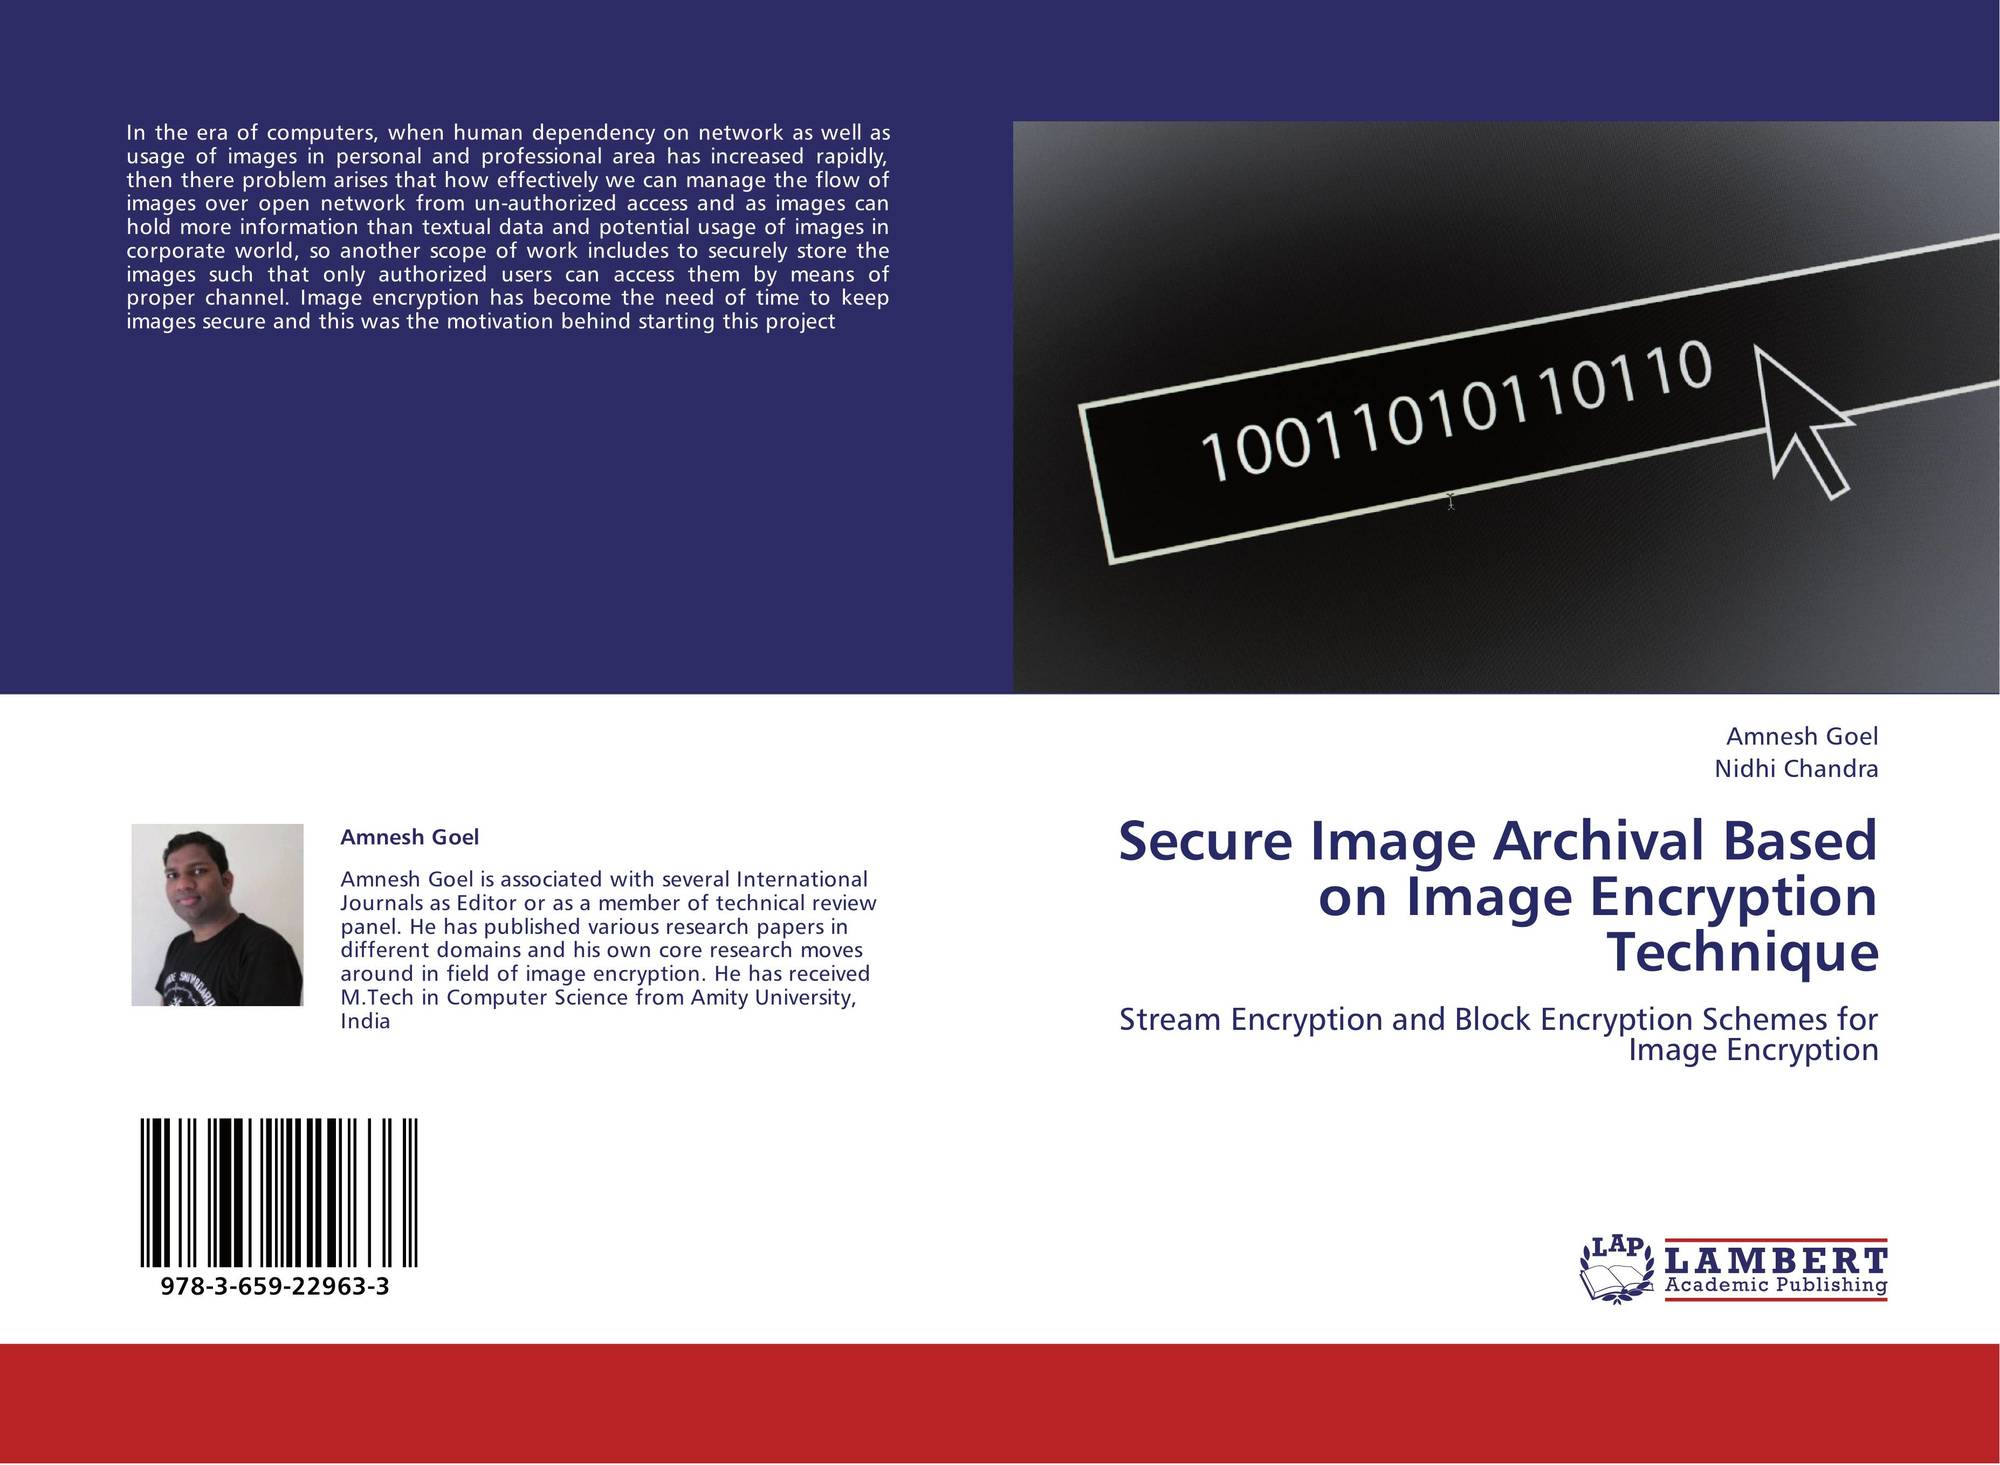 encryption technique research papers Encryption research paper - essays & dissertations written by top quality writers get an a+ aid even for the hardest assignments best hq.